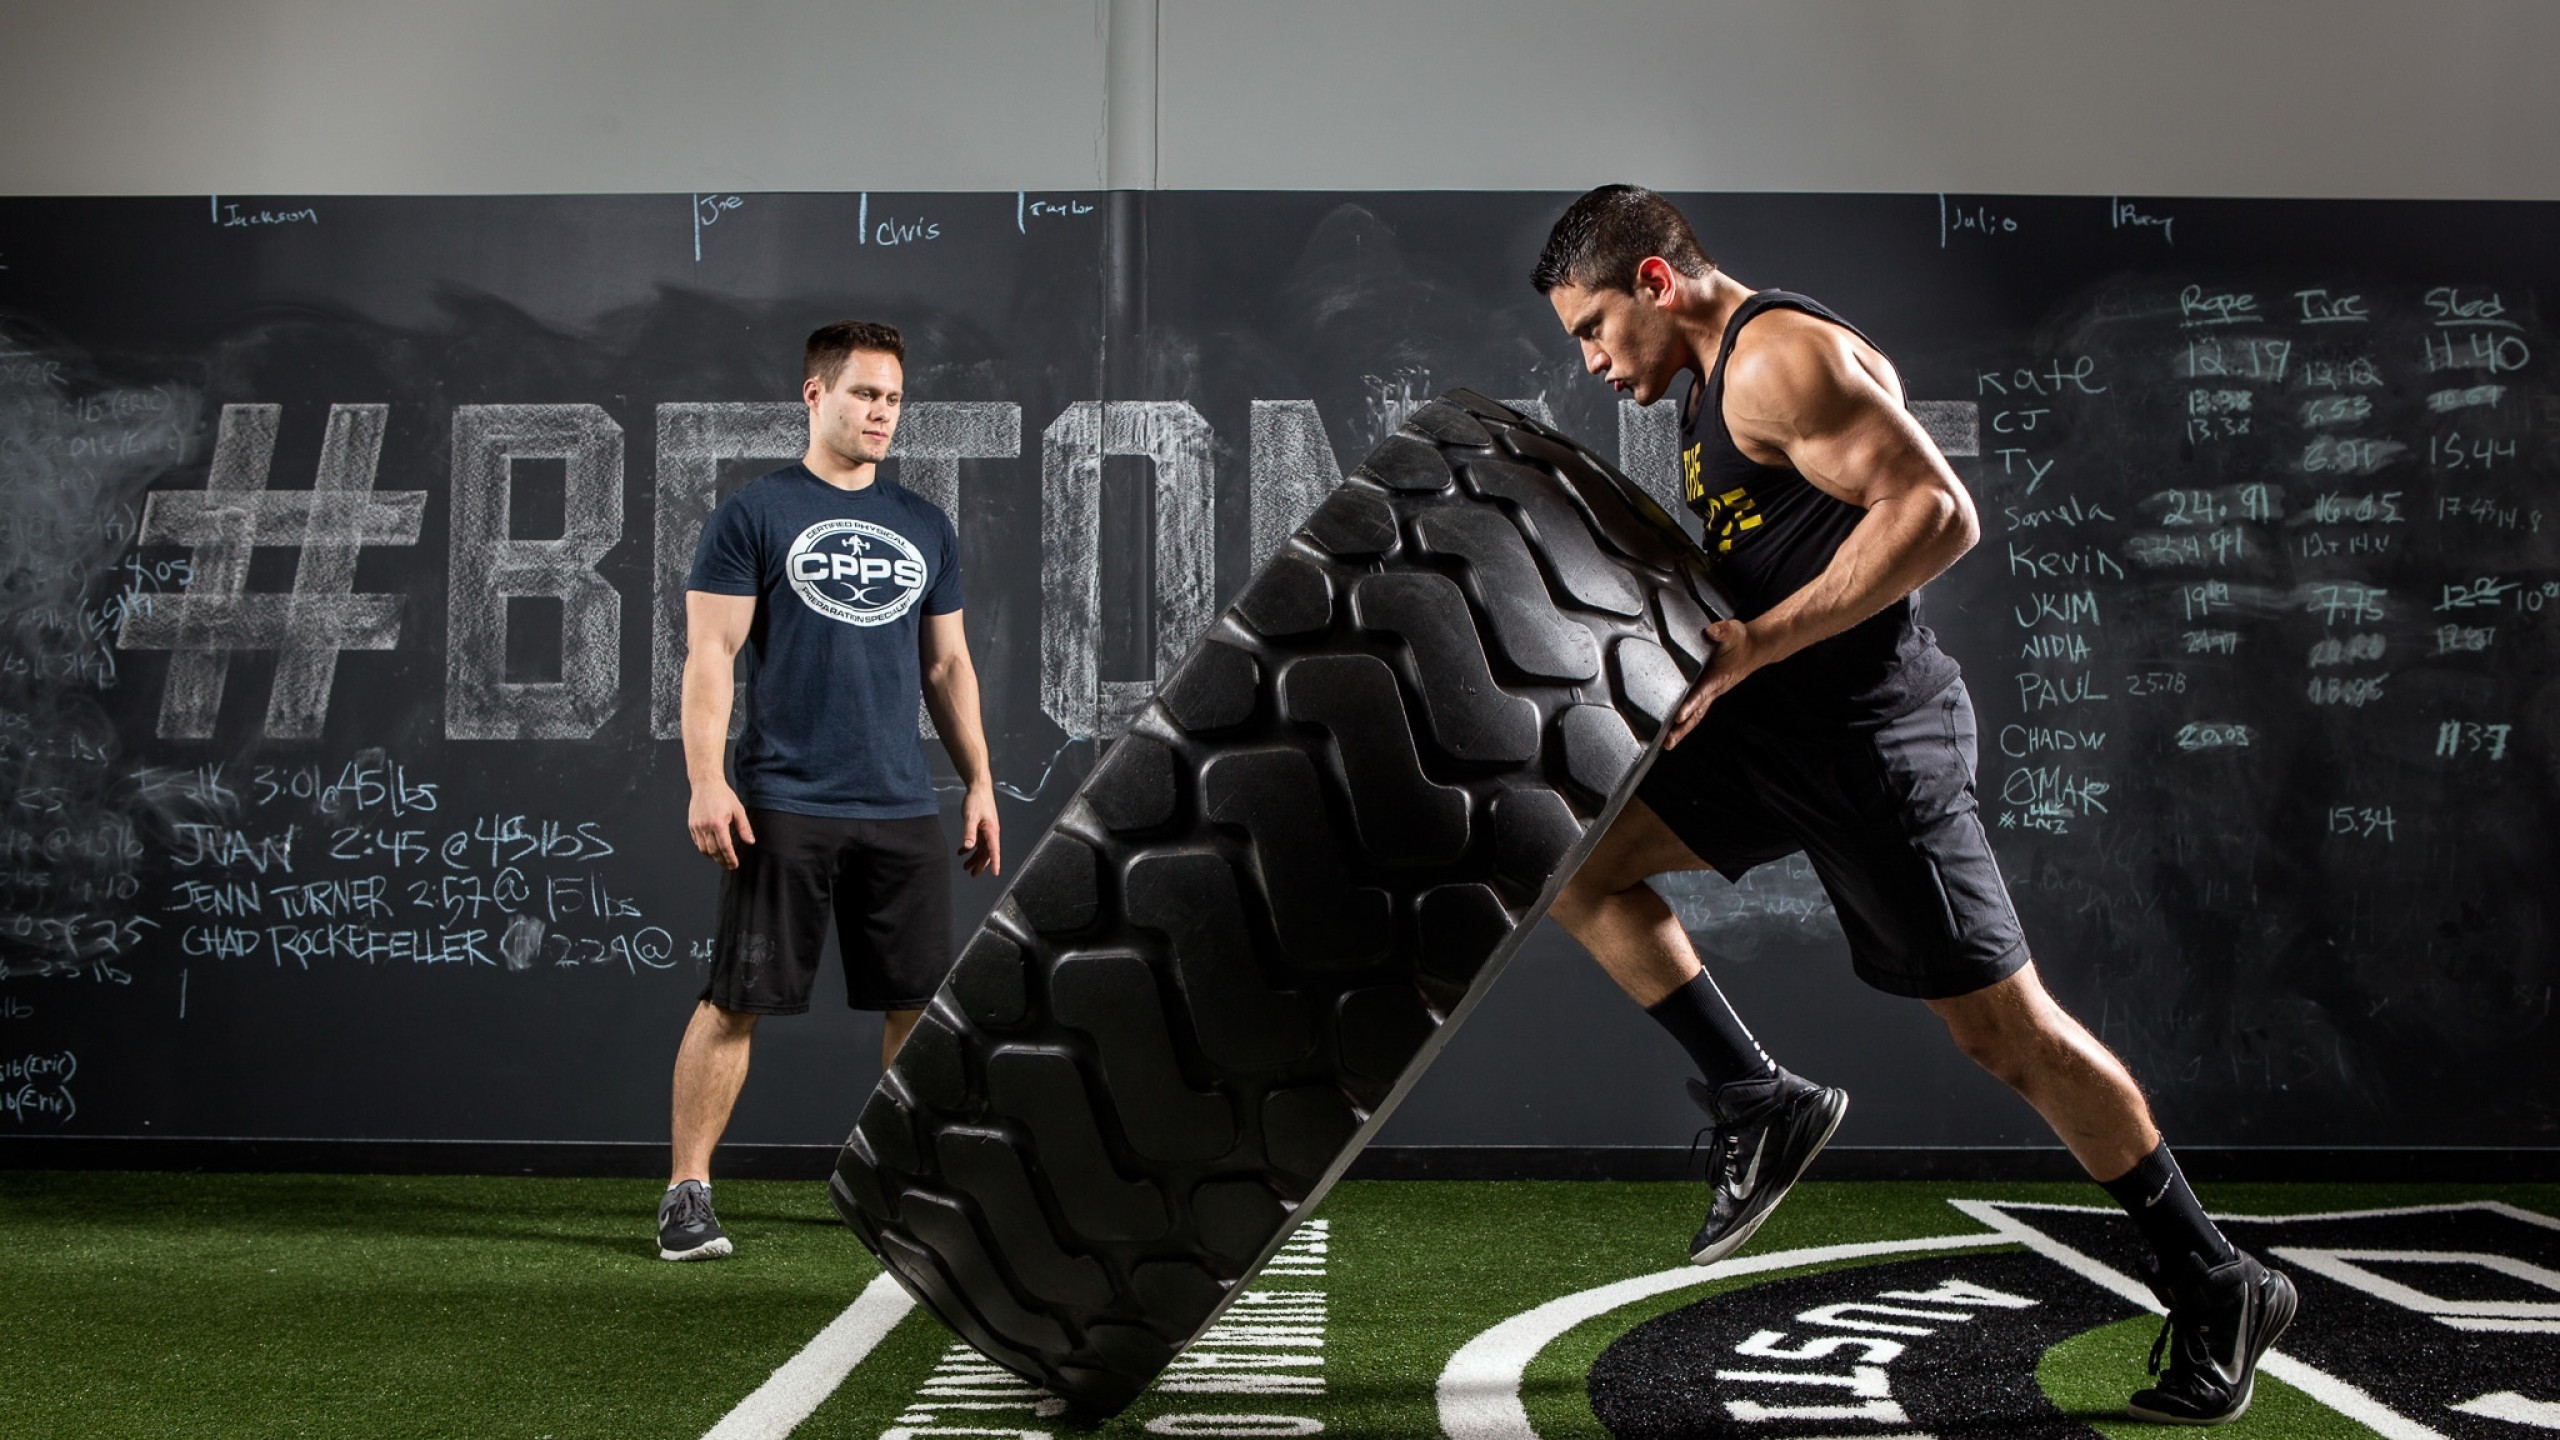 Crossfit Wallpapers (67+ images)